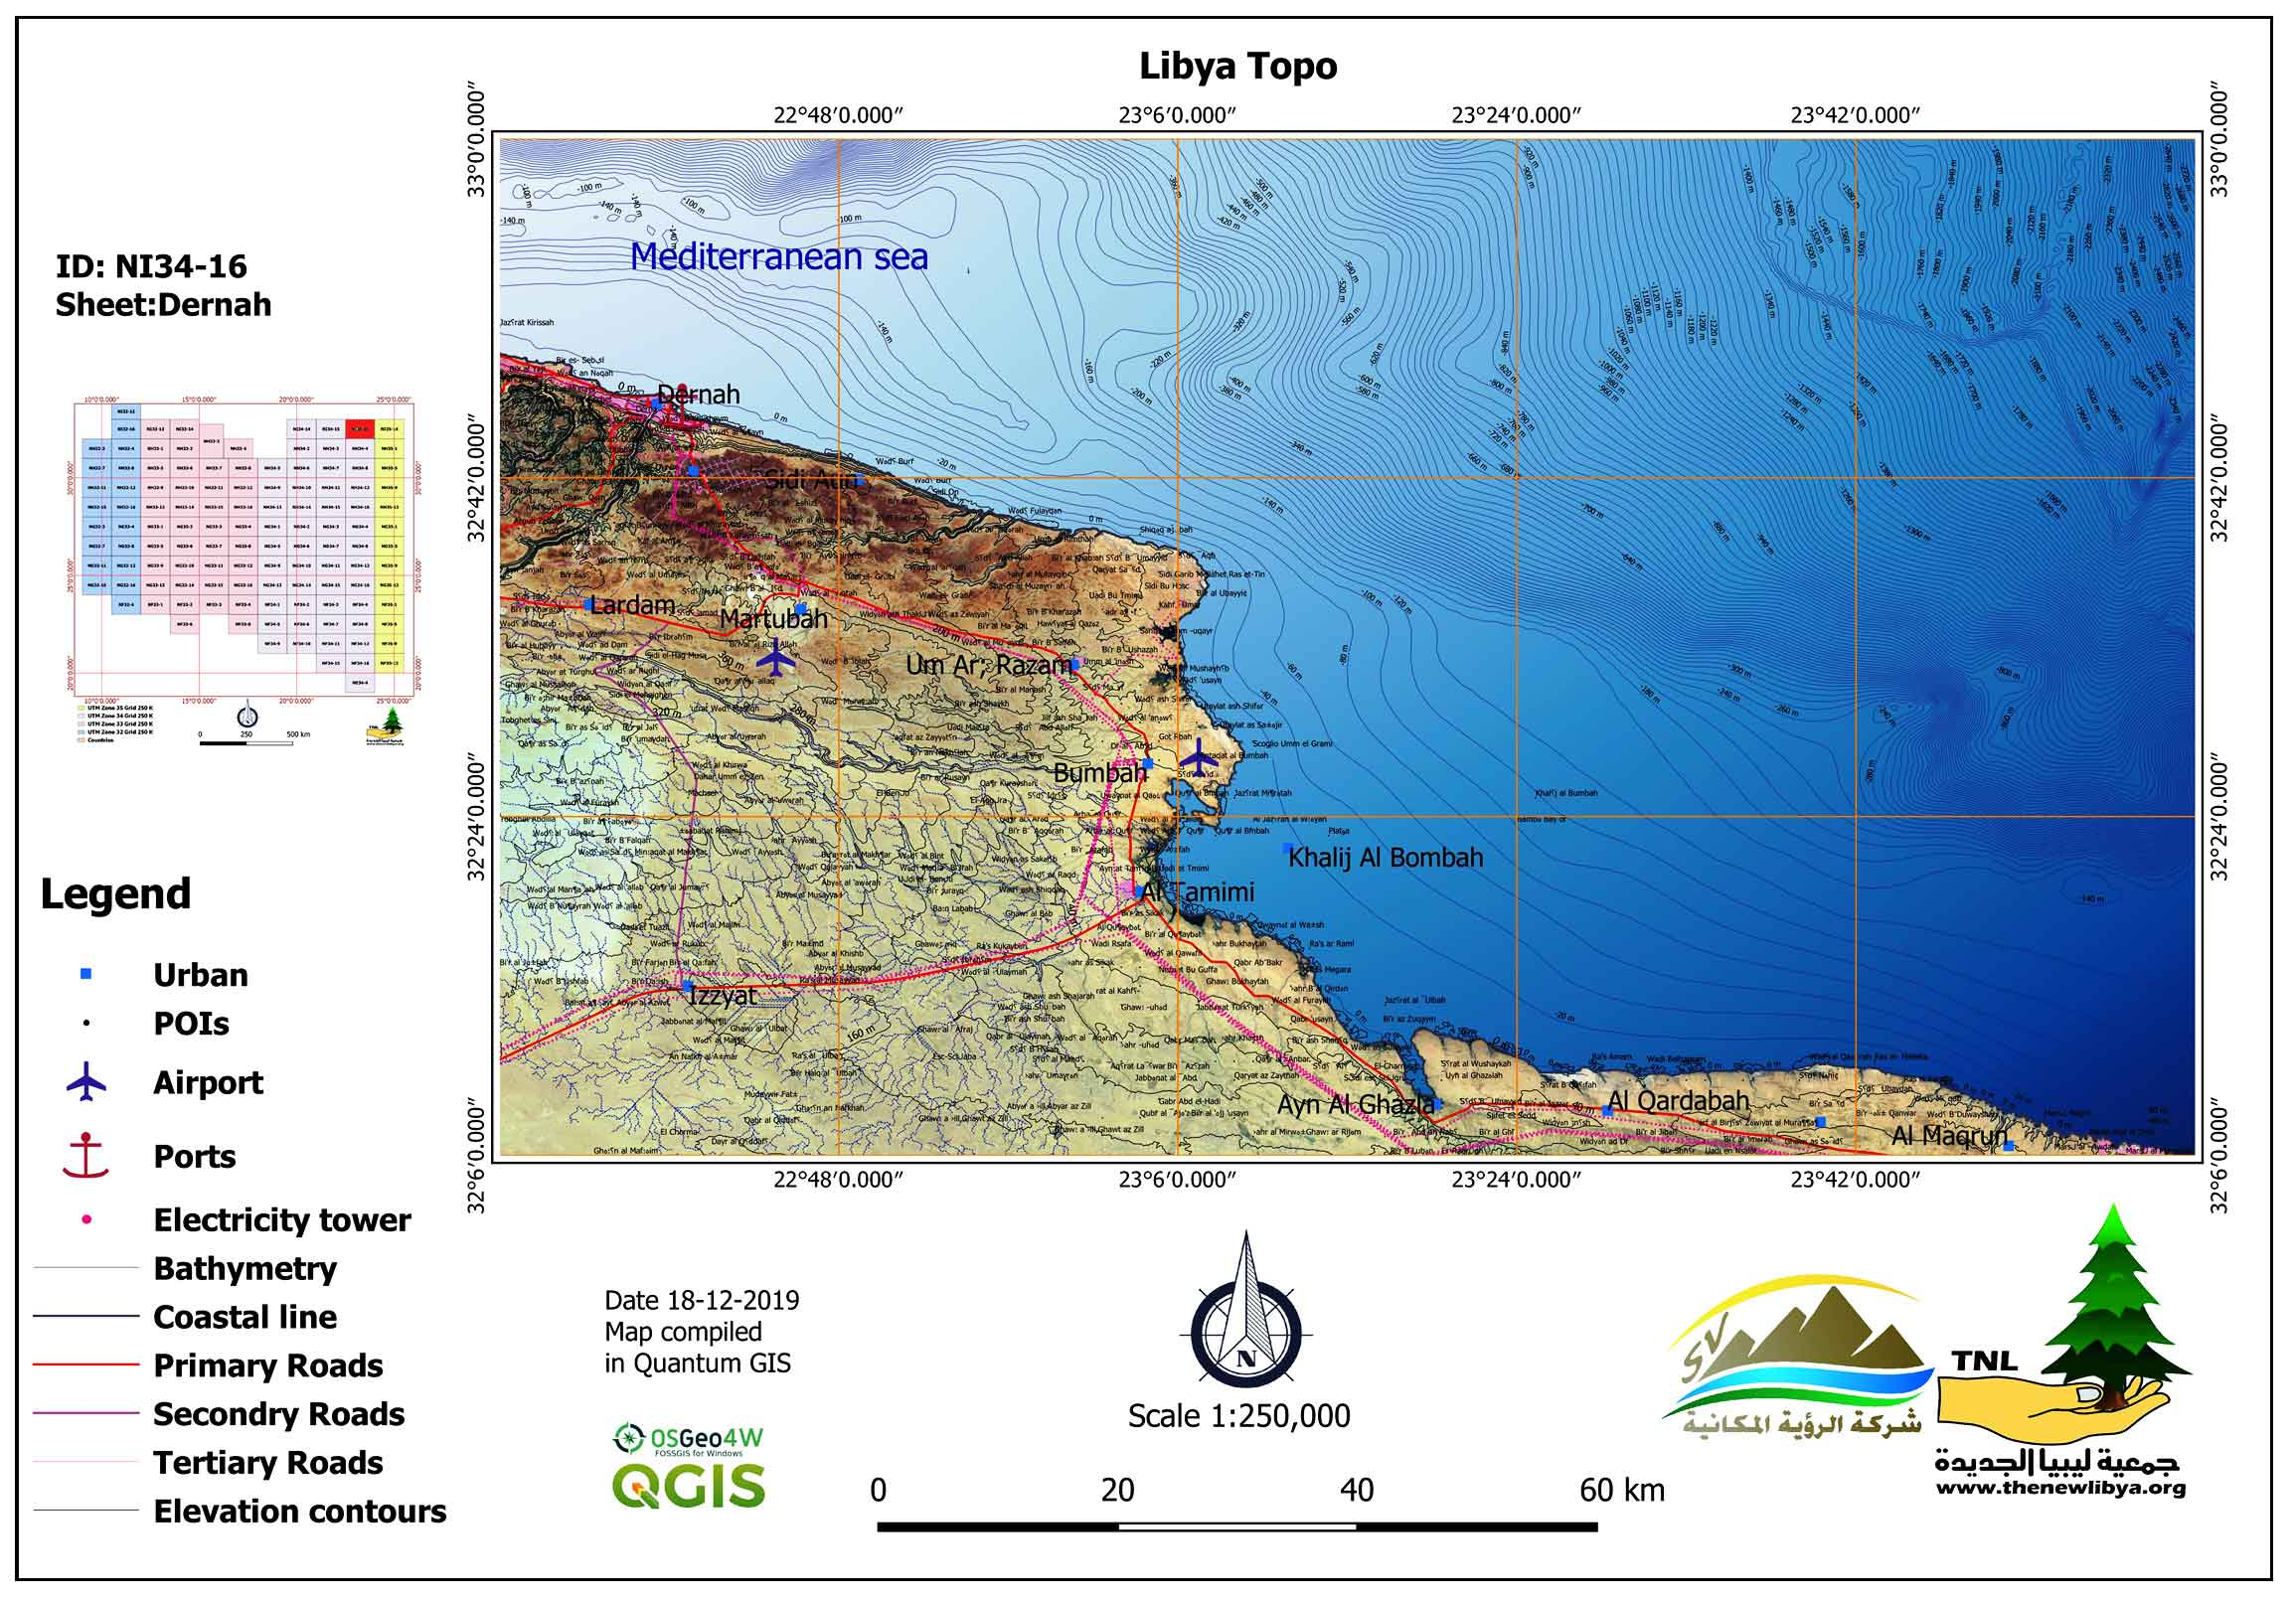 Updating Topographic Maps at Scale 1:250000 for Libyan Territory Using Quantum GIS (QGIS) and Open Geospatial Data: Libya Topo-Project